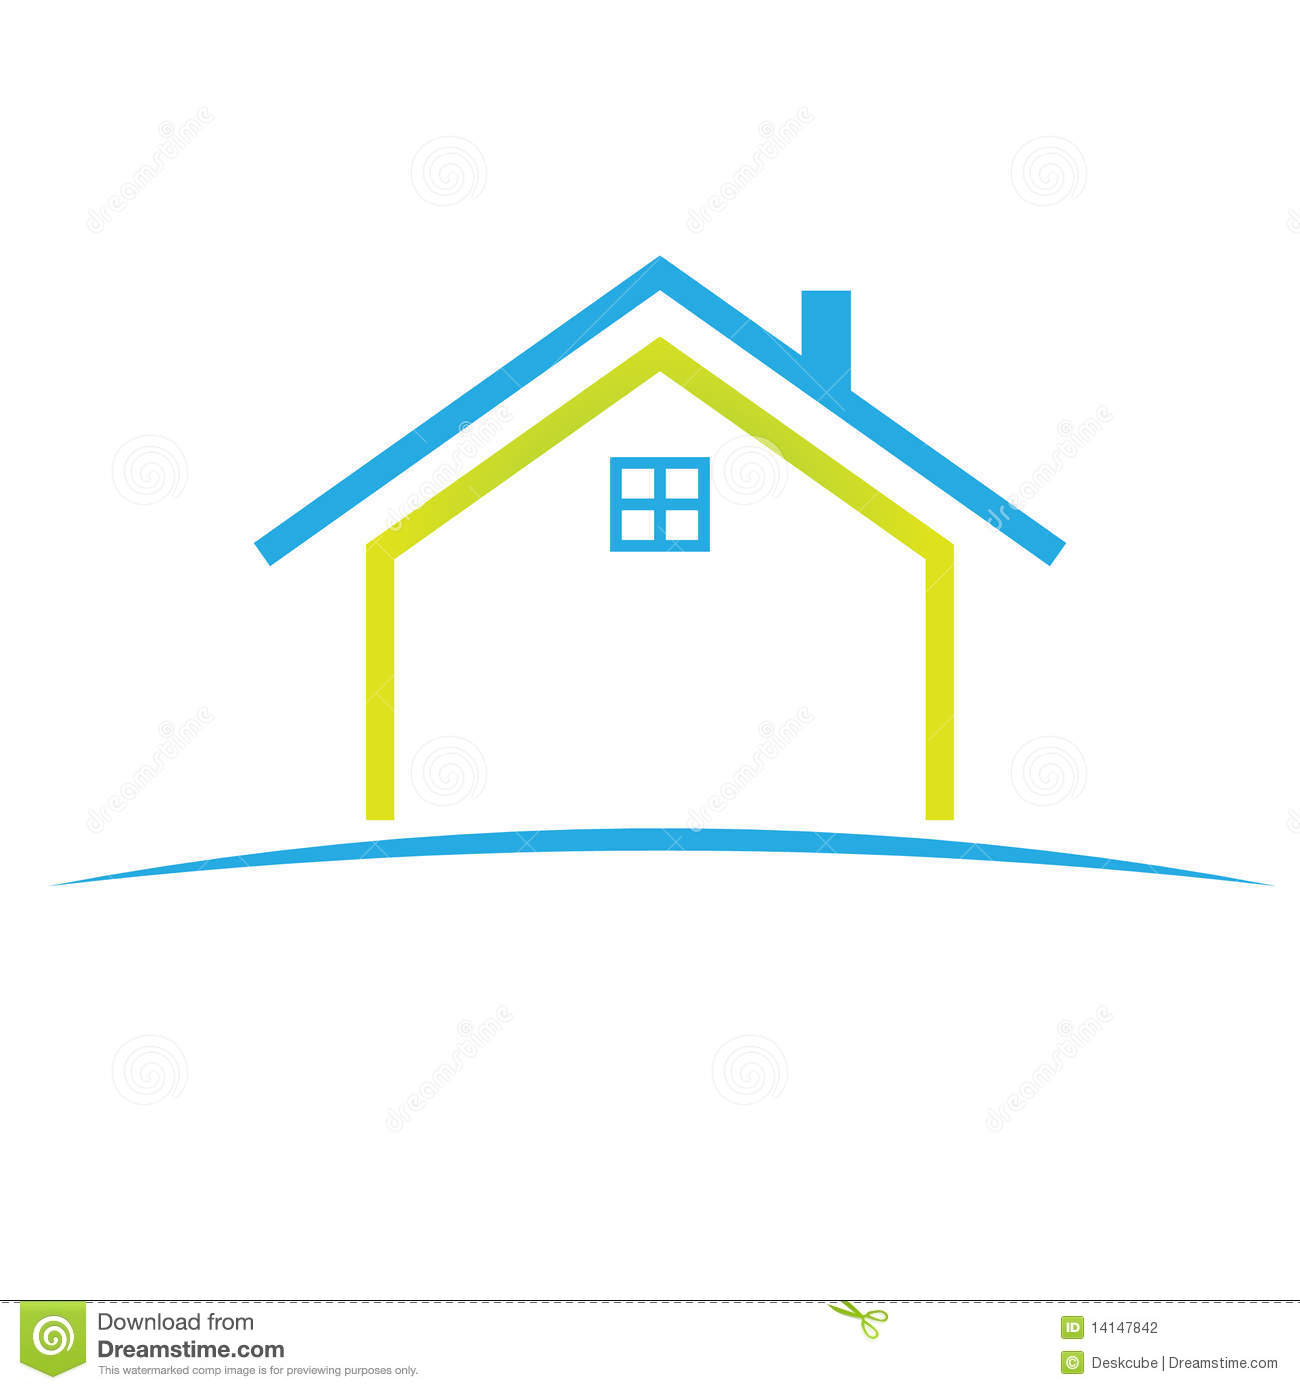 Free Download Residential Building Plans Logo Home Symbol Stock Vector Image Of Front Symbol